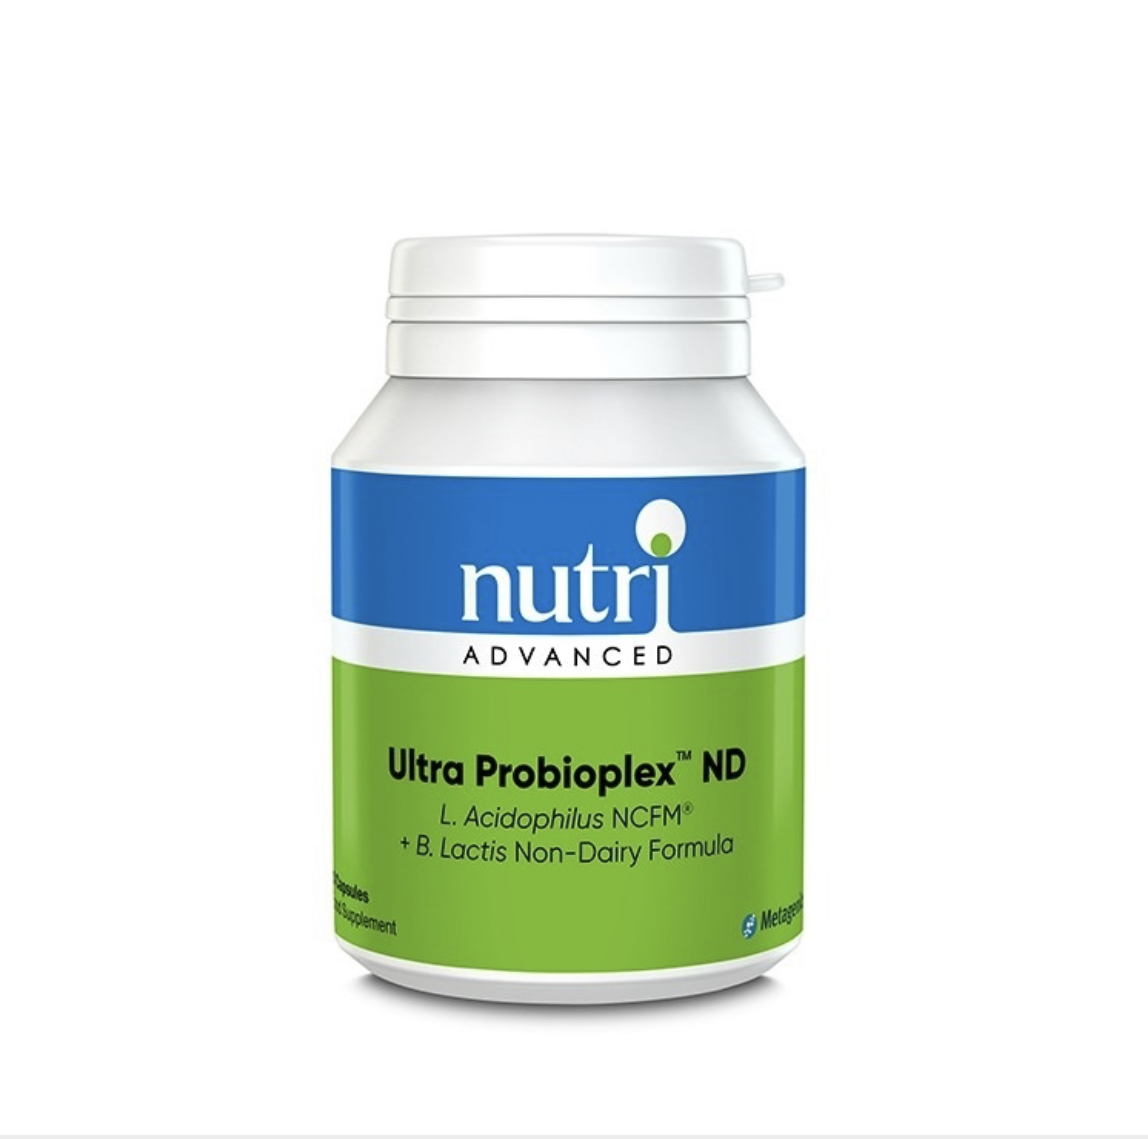 Nutri Advanced Ultraprobioplex Probiotic ND Capsules  60 capsules